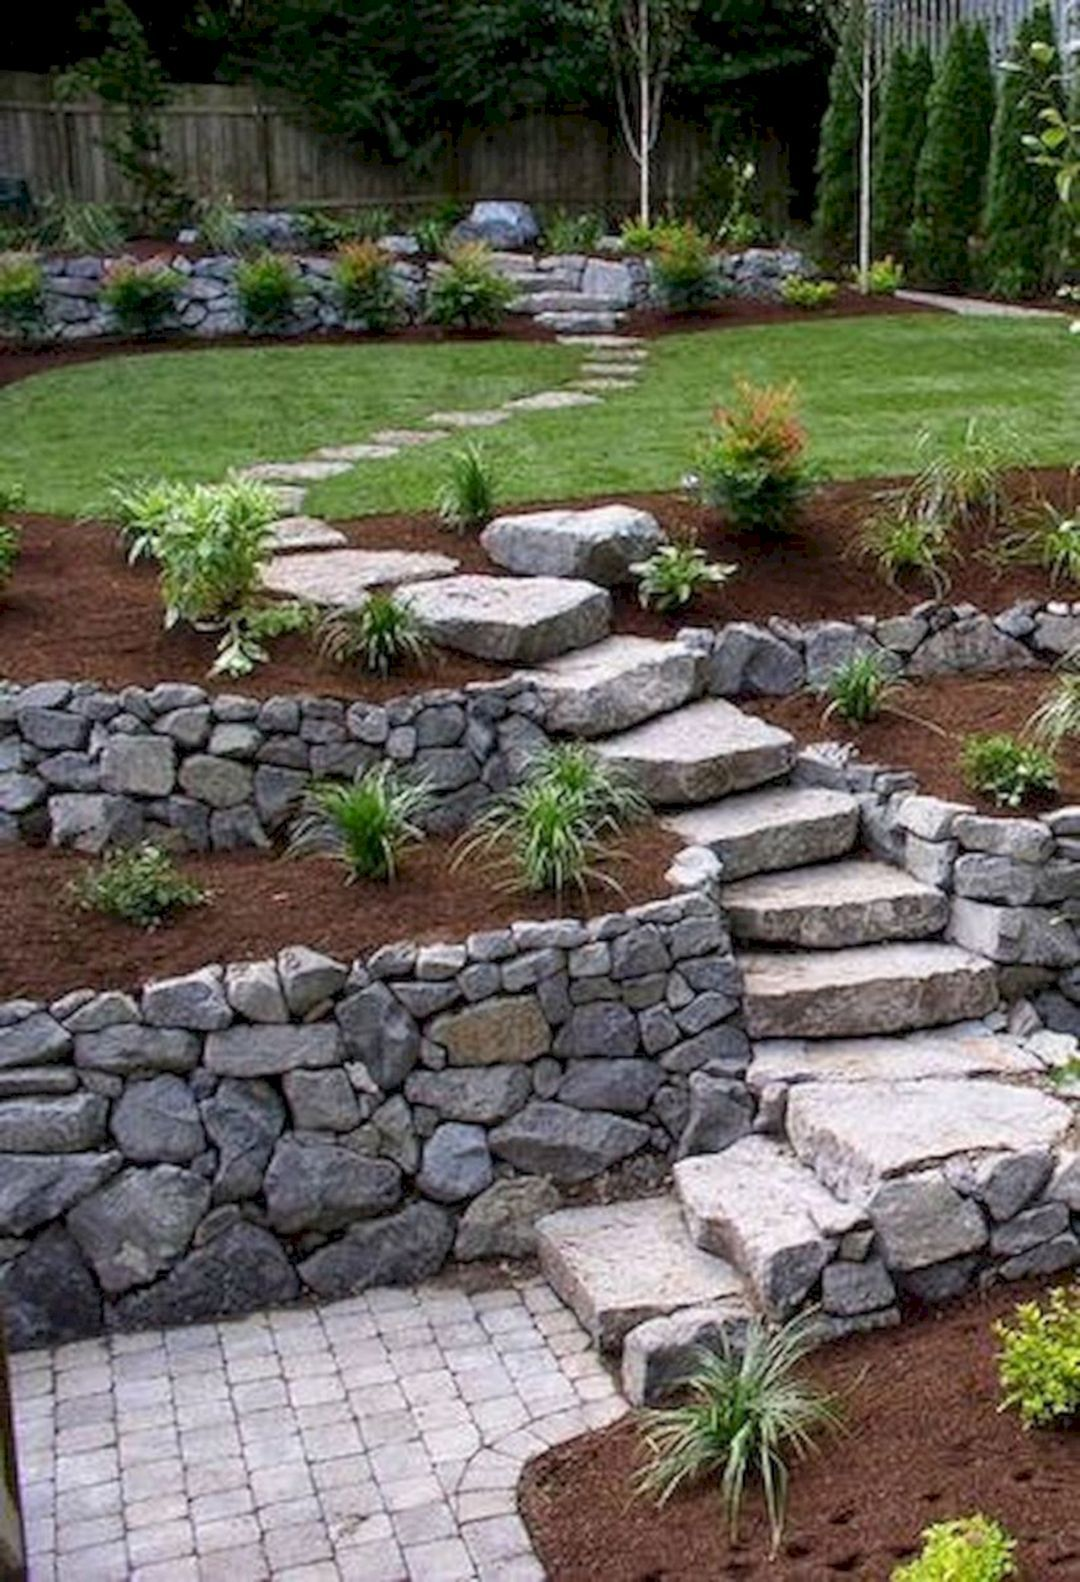 Landscaping ideas for front yard with porch  Impressive Front Porch Landscaping Ideas to Increase Your Home